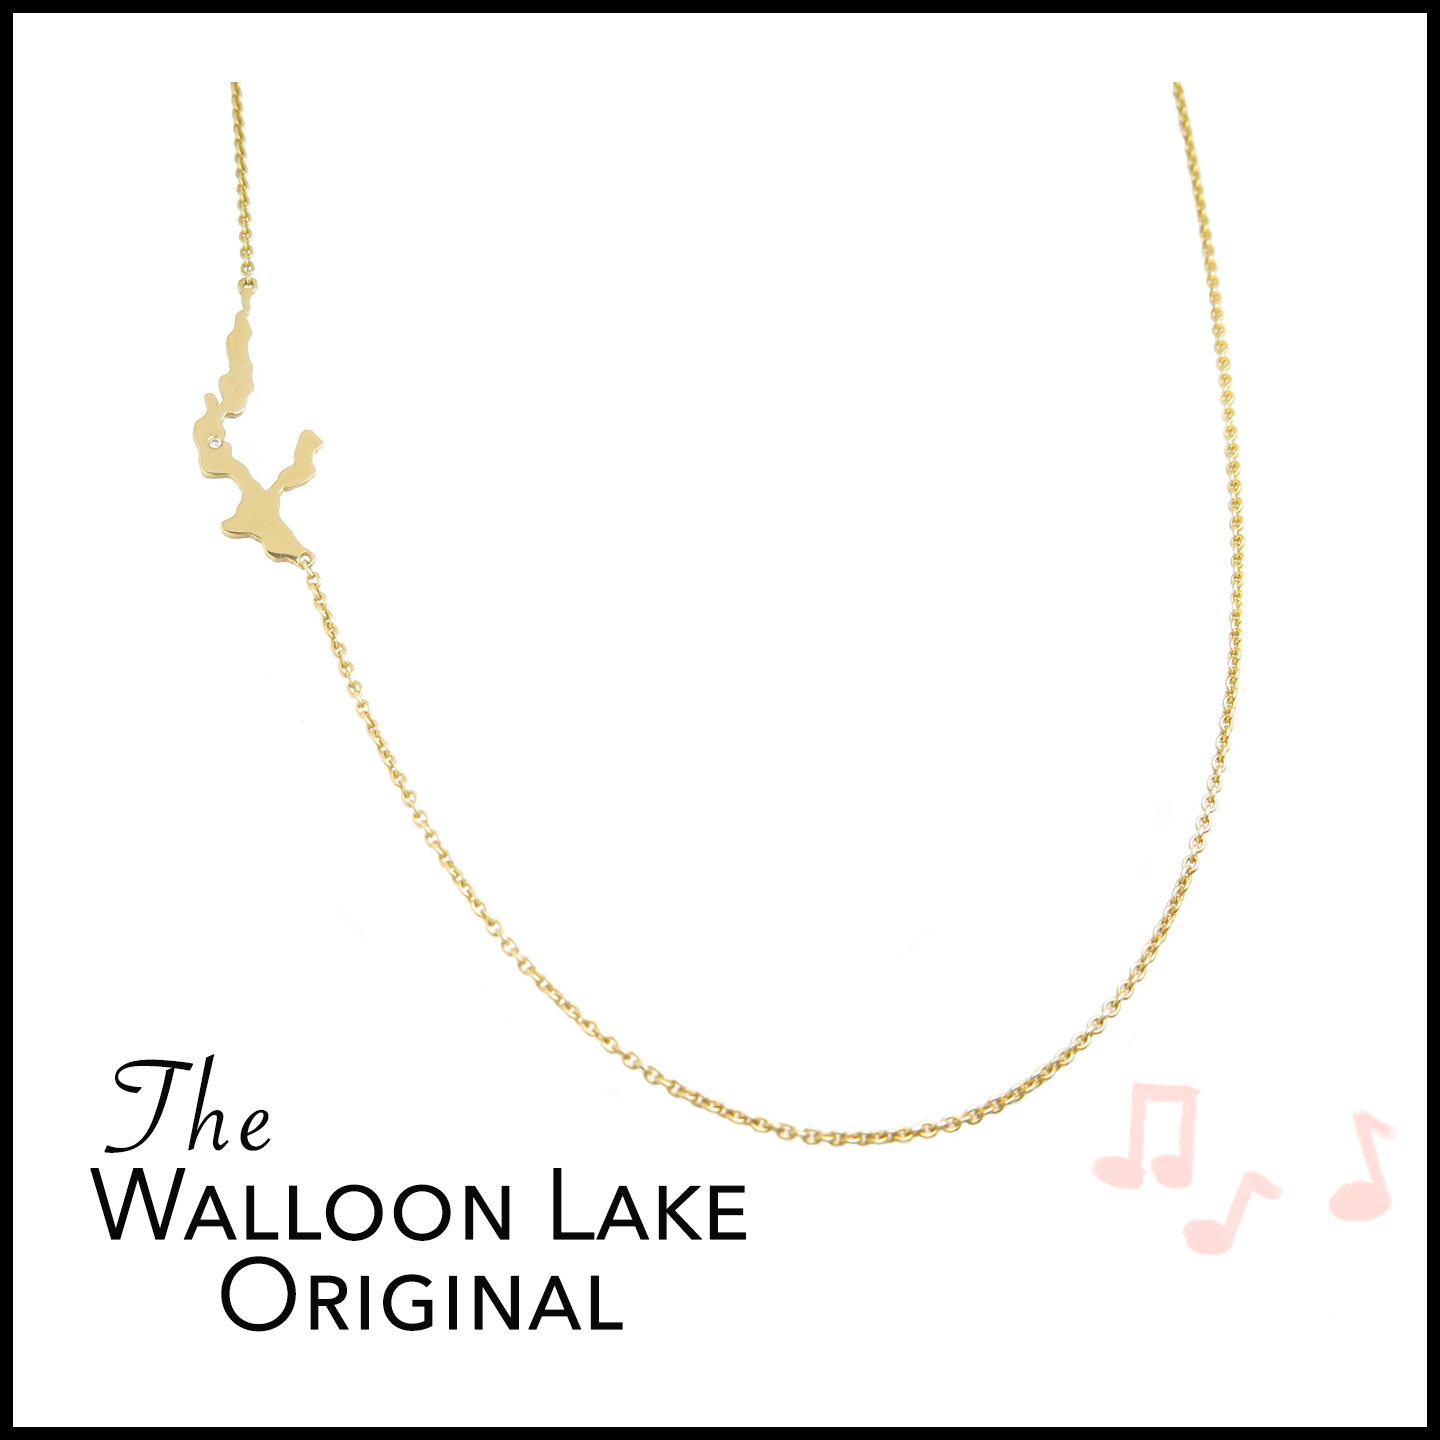 shop-the-look-walloon-lake-original-necklace-by-kerry-gilligan.jpg